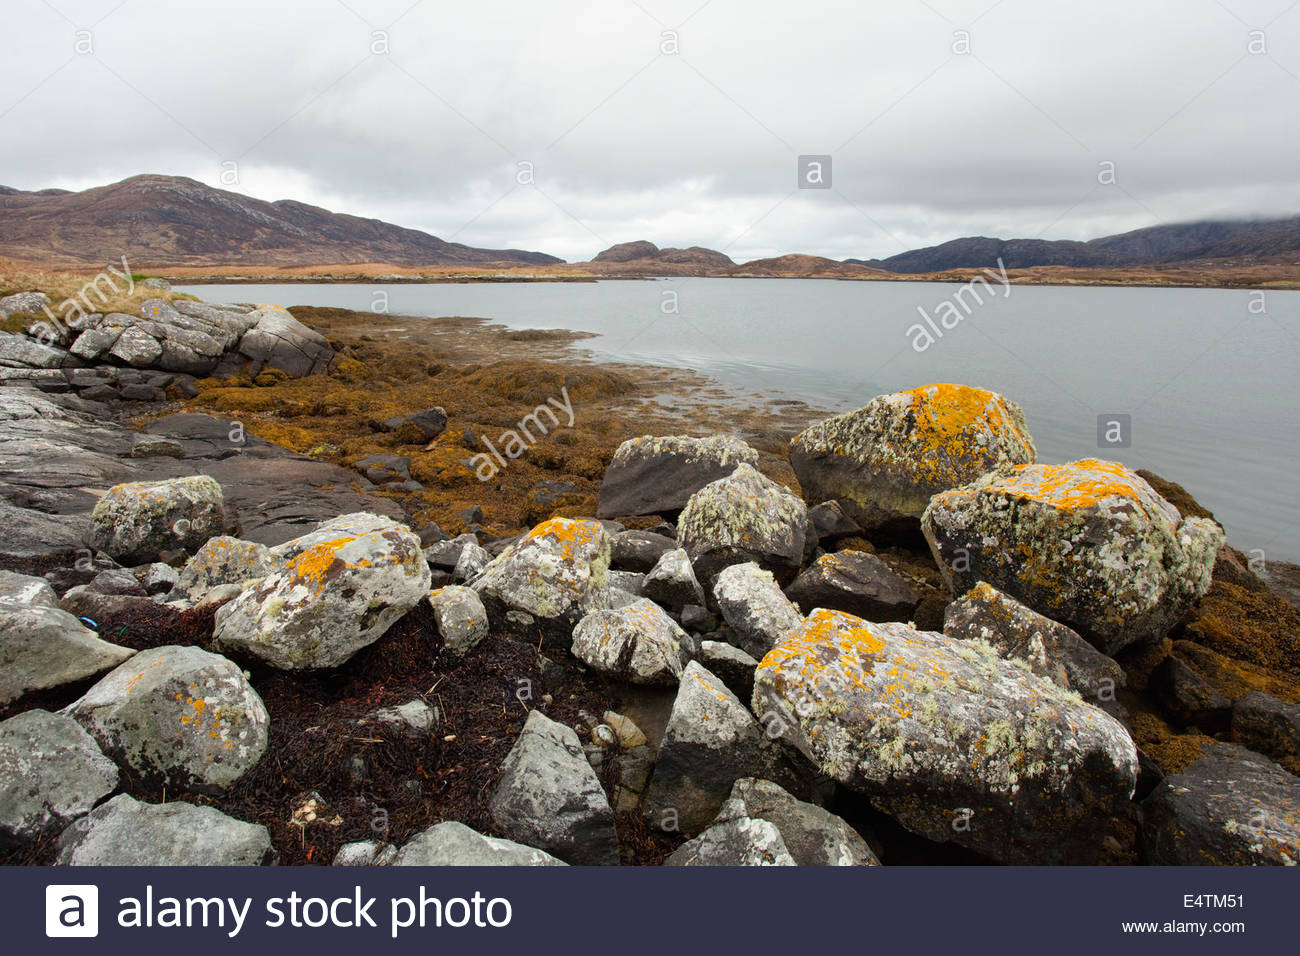 Lichen covered boulders by the side of Loch Aineort near Lochboisdale, South Uist, Outer Hebrides, Scotland. - Stock Image